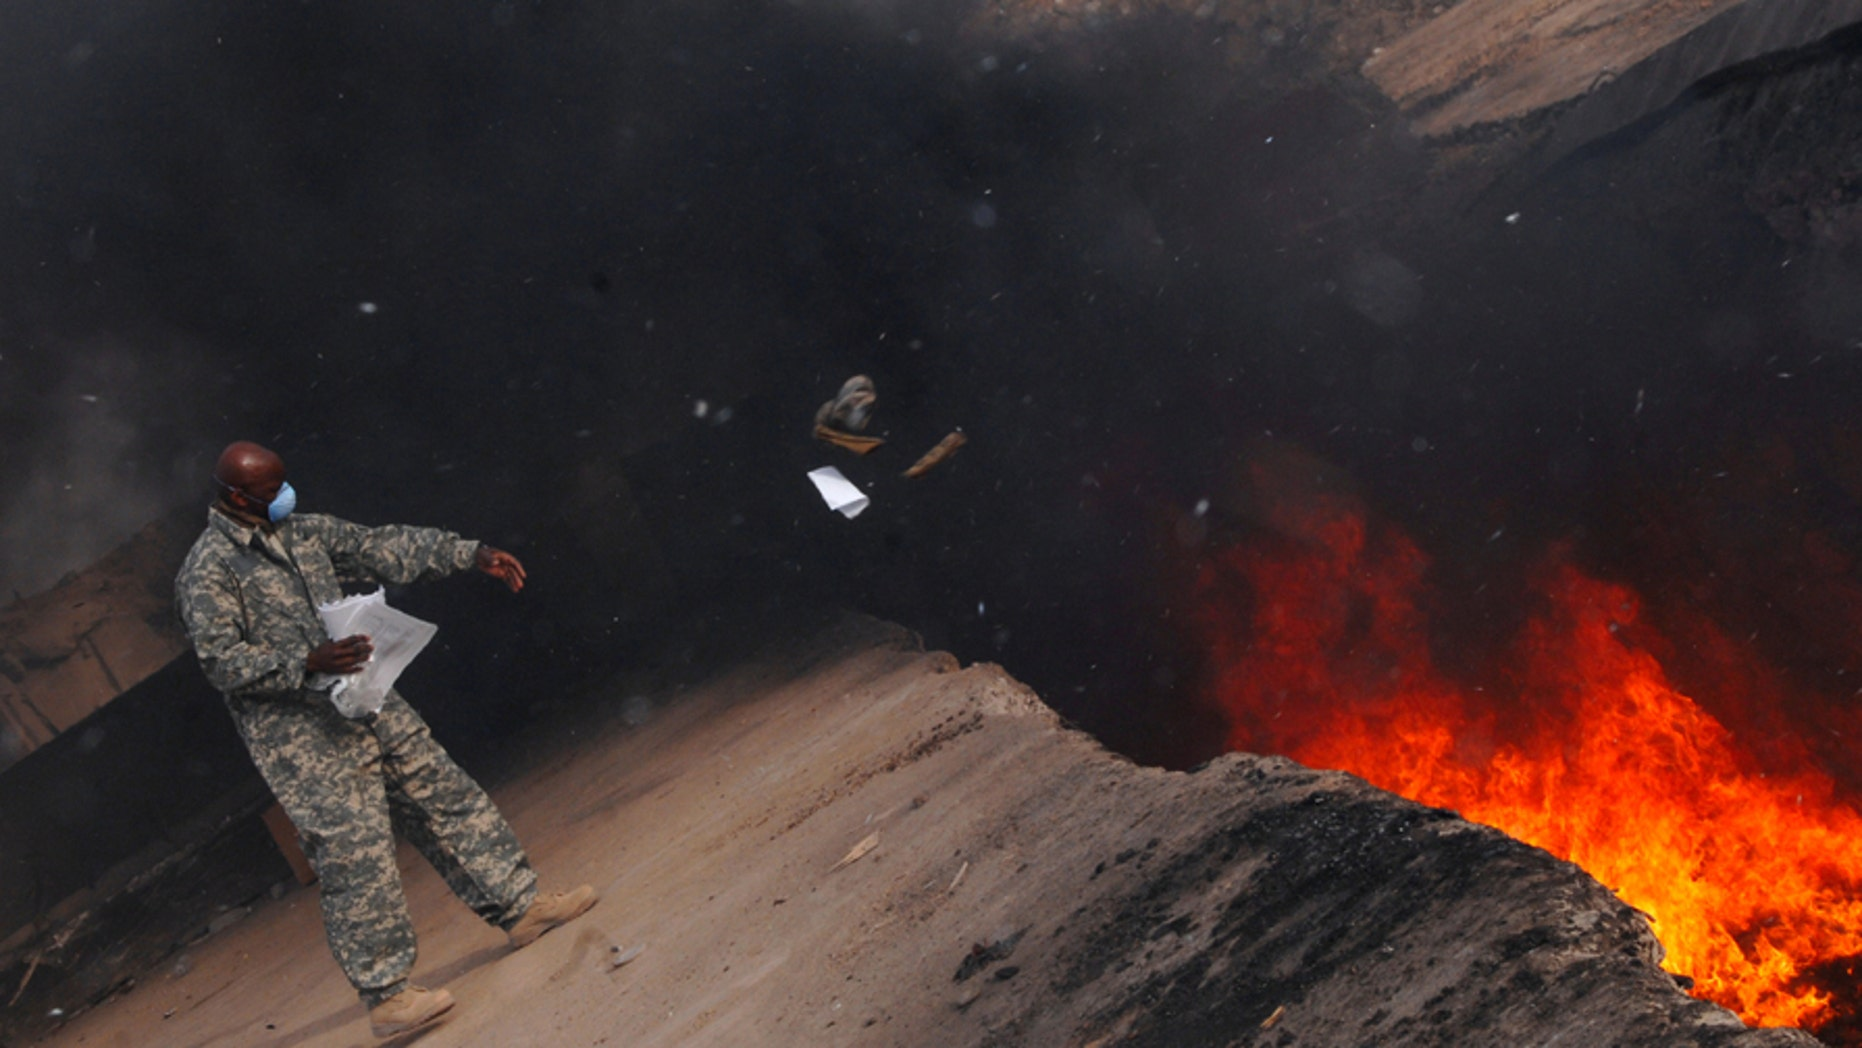 Thousands of U.S. military personnel who served on bases in Iraq and Afghanistan were exposed to the dense black smoke from burn pits where everything from IEDs to human waste was incinerated.